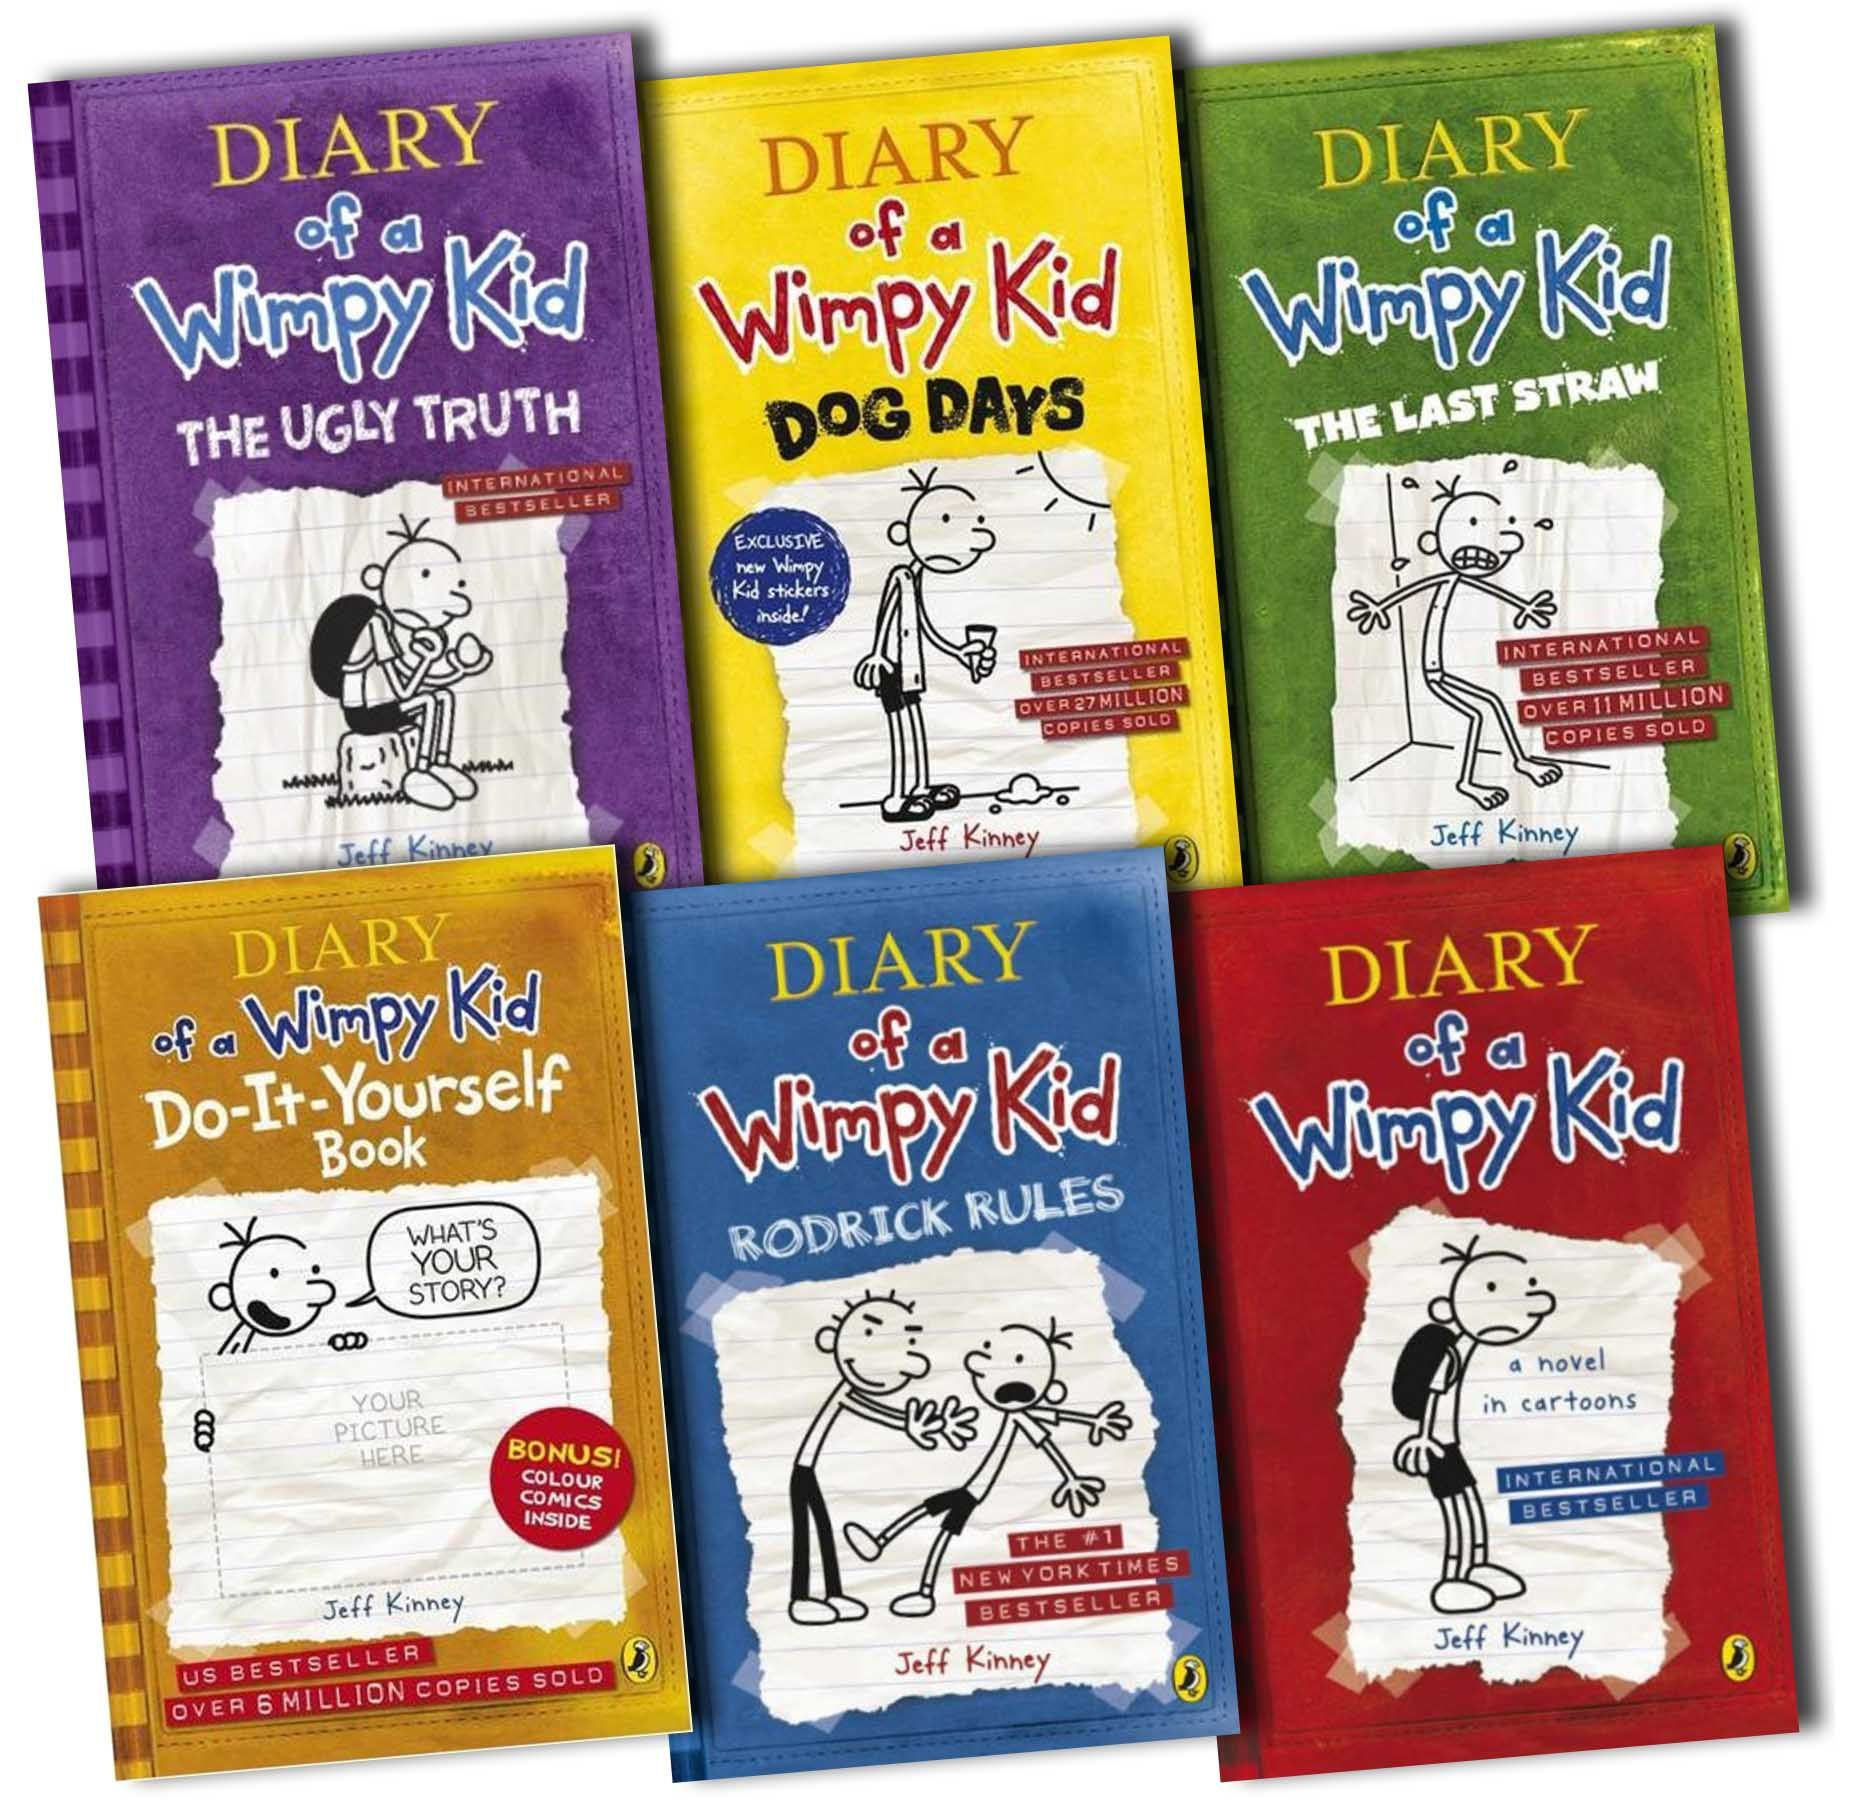 Diary of a wimpy kid my son loves these books reading room ii diary of a wimpy kid my son loves these books solutioingenieria Gallery